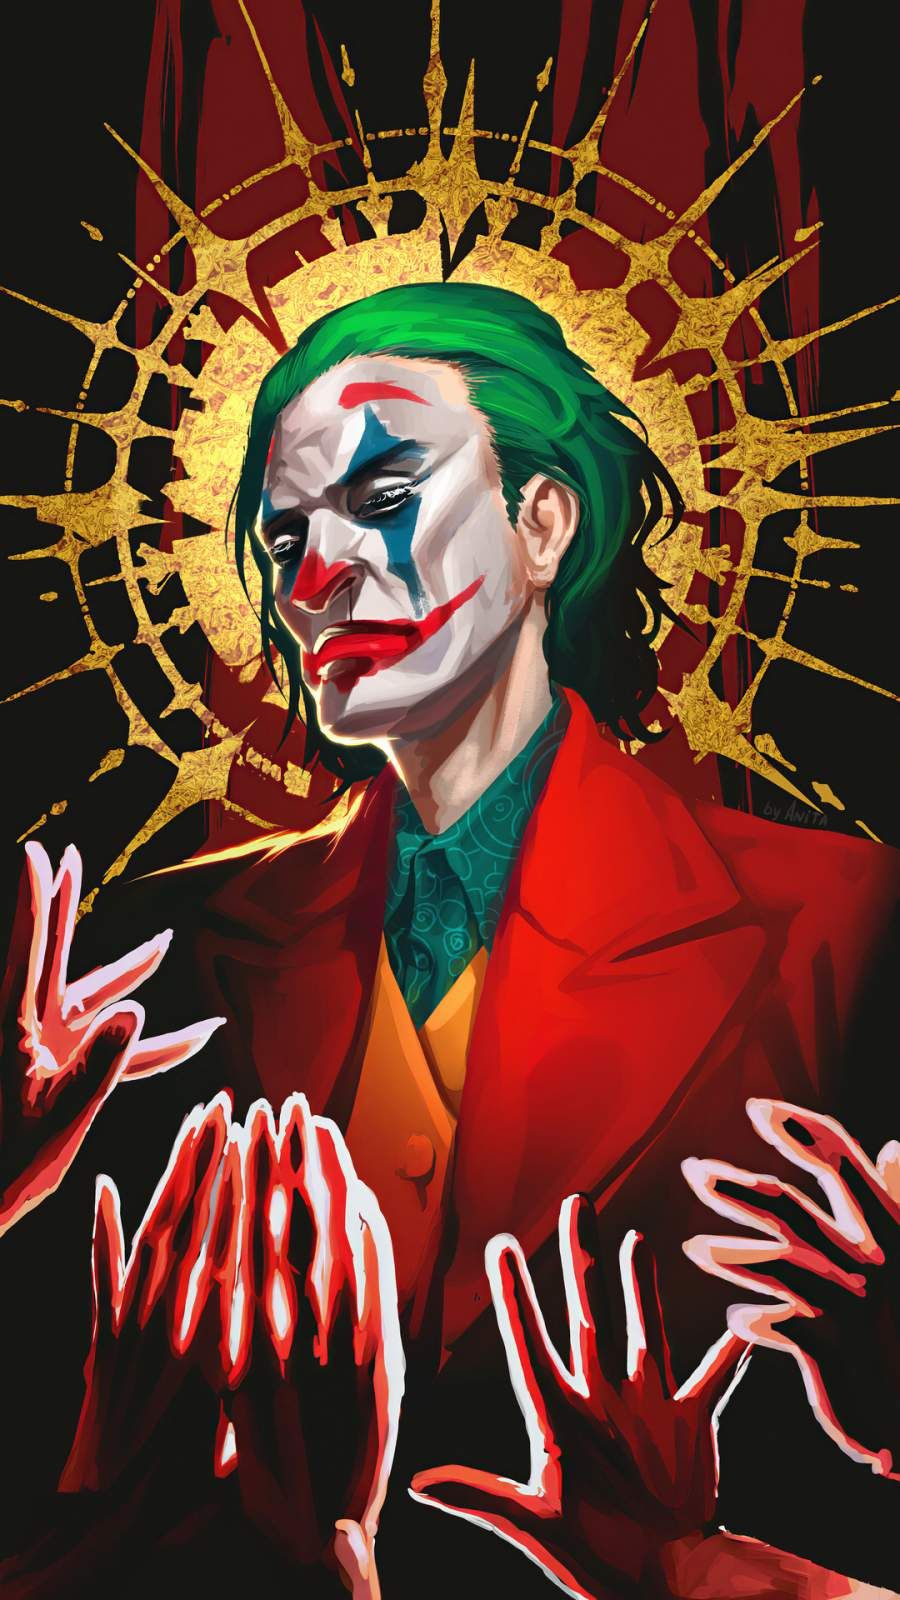 Iphone Wallpapers For Iphone 8 Iphone 8 Plus Iphone 6s Iphone 6s Plus Iphone X And Ipod Touch High Quality Wallpape Joker Art Joker Wallpapers Joker Poster Ideas for iphone 6 joker wallpaper 4k